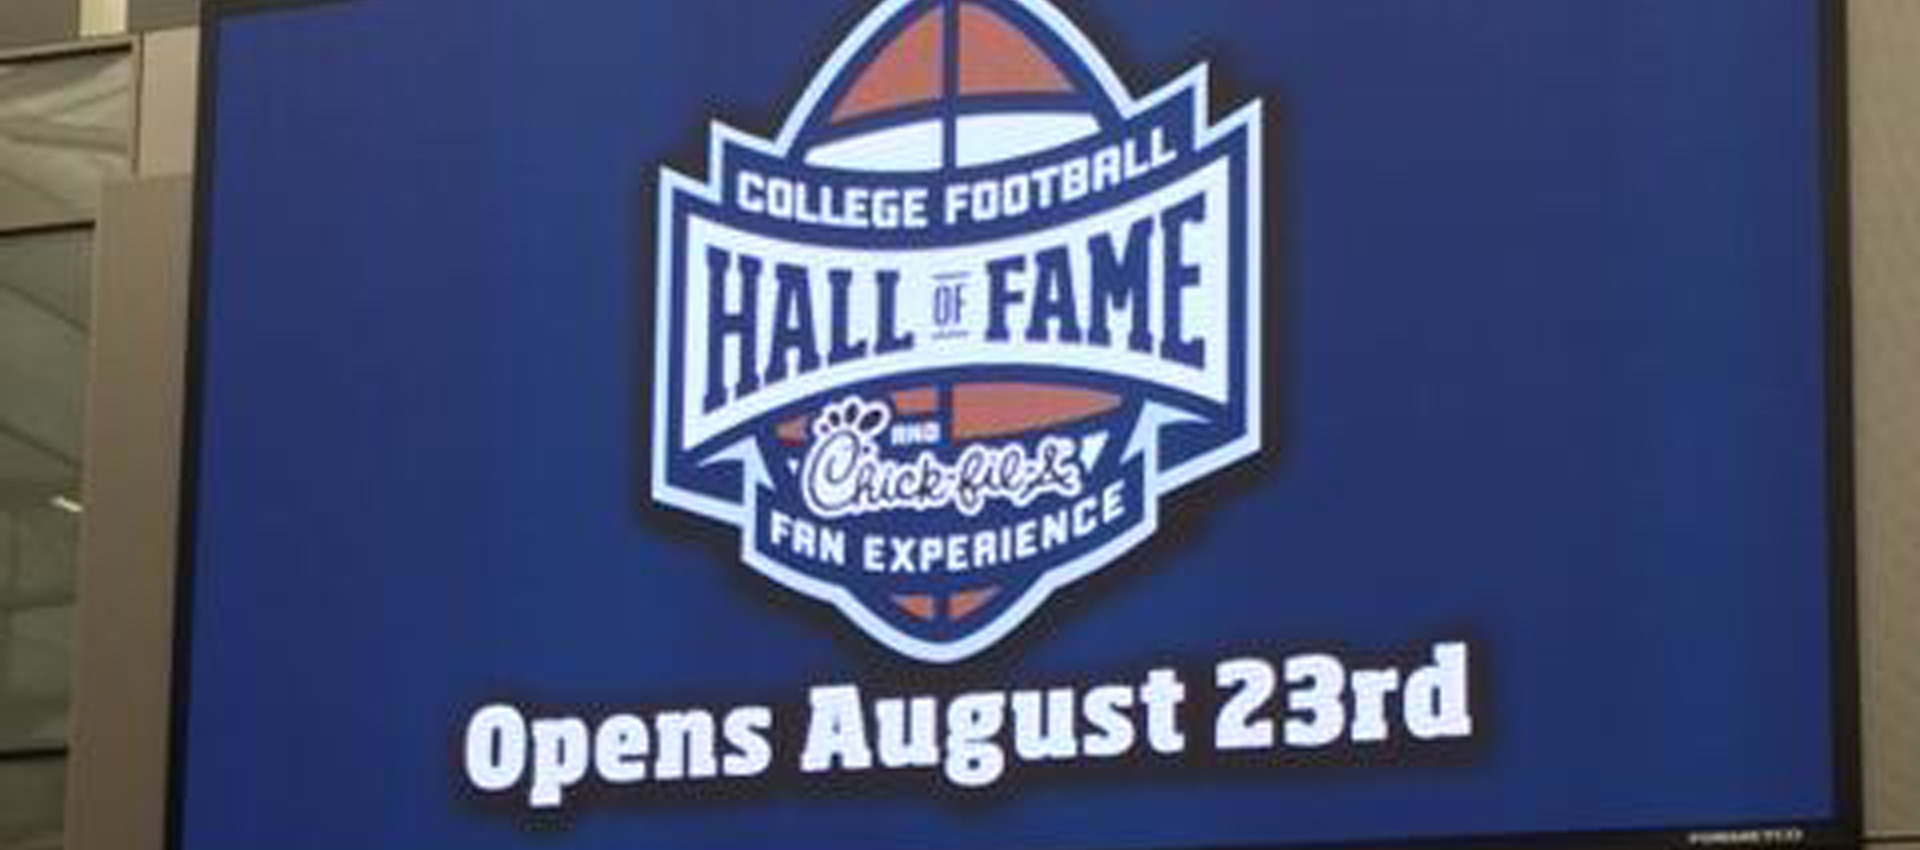 College Football Hall of Fame – Indoor